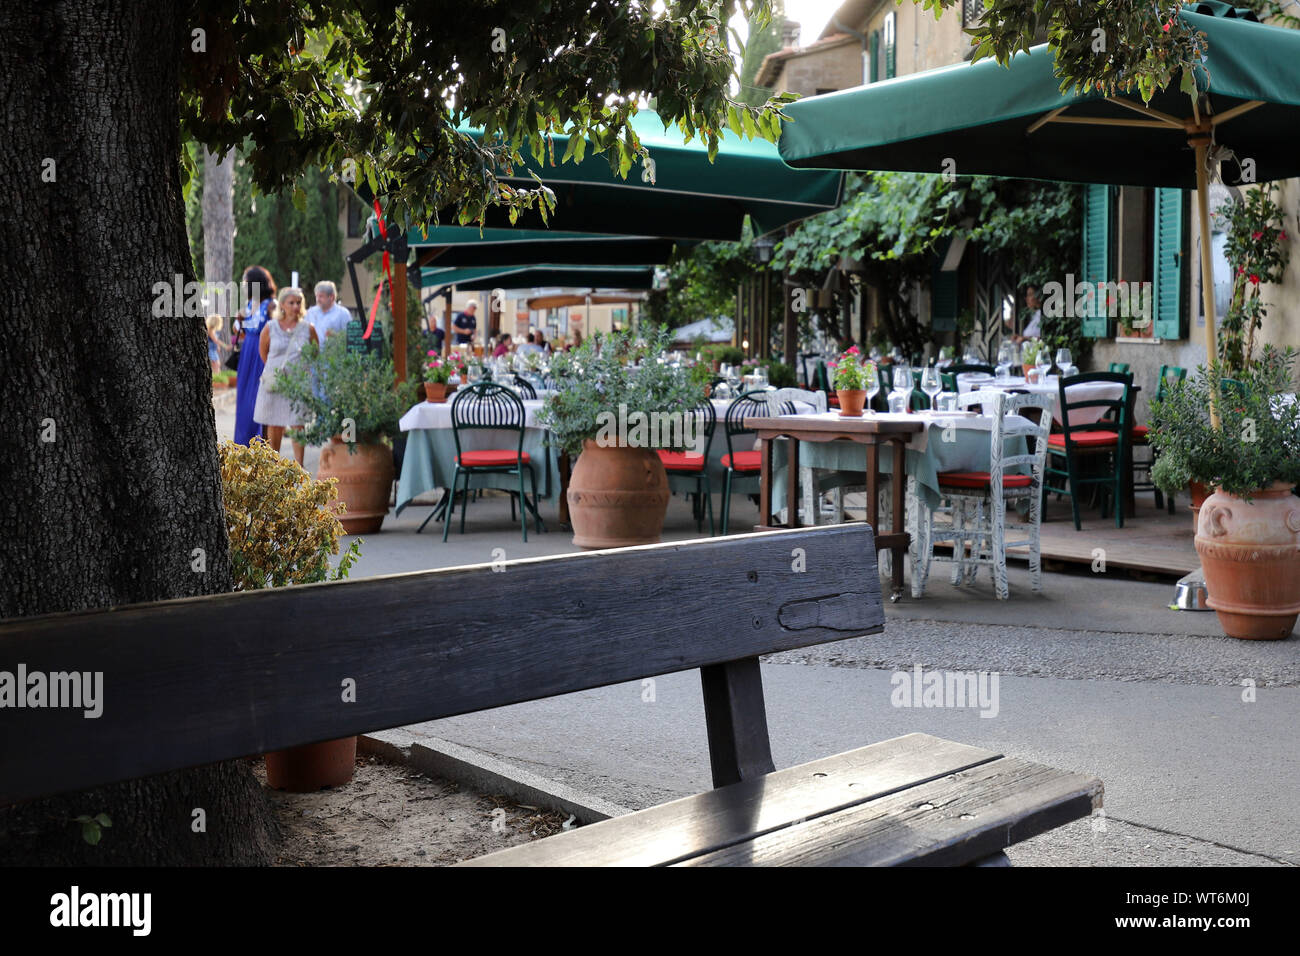 Italy, Tuscany region. Restaurant in a small village Stock Photo